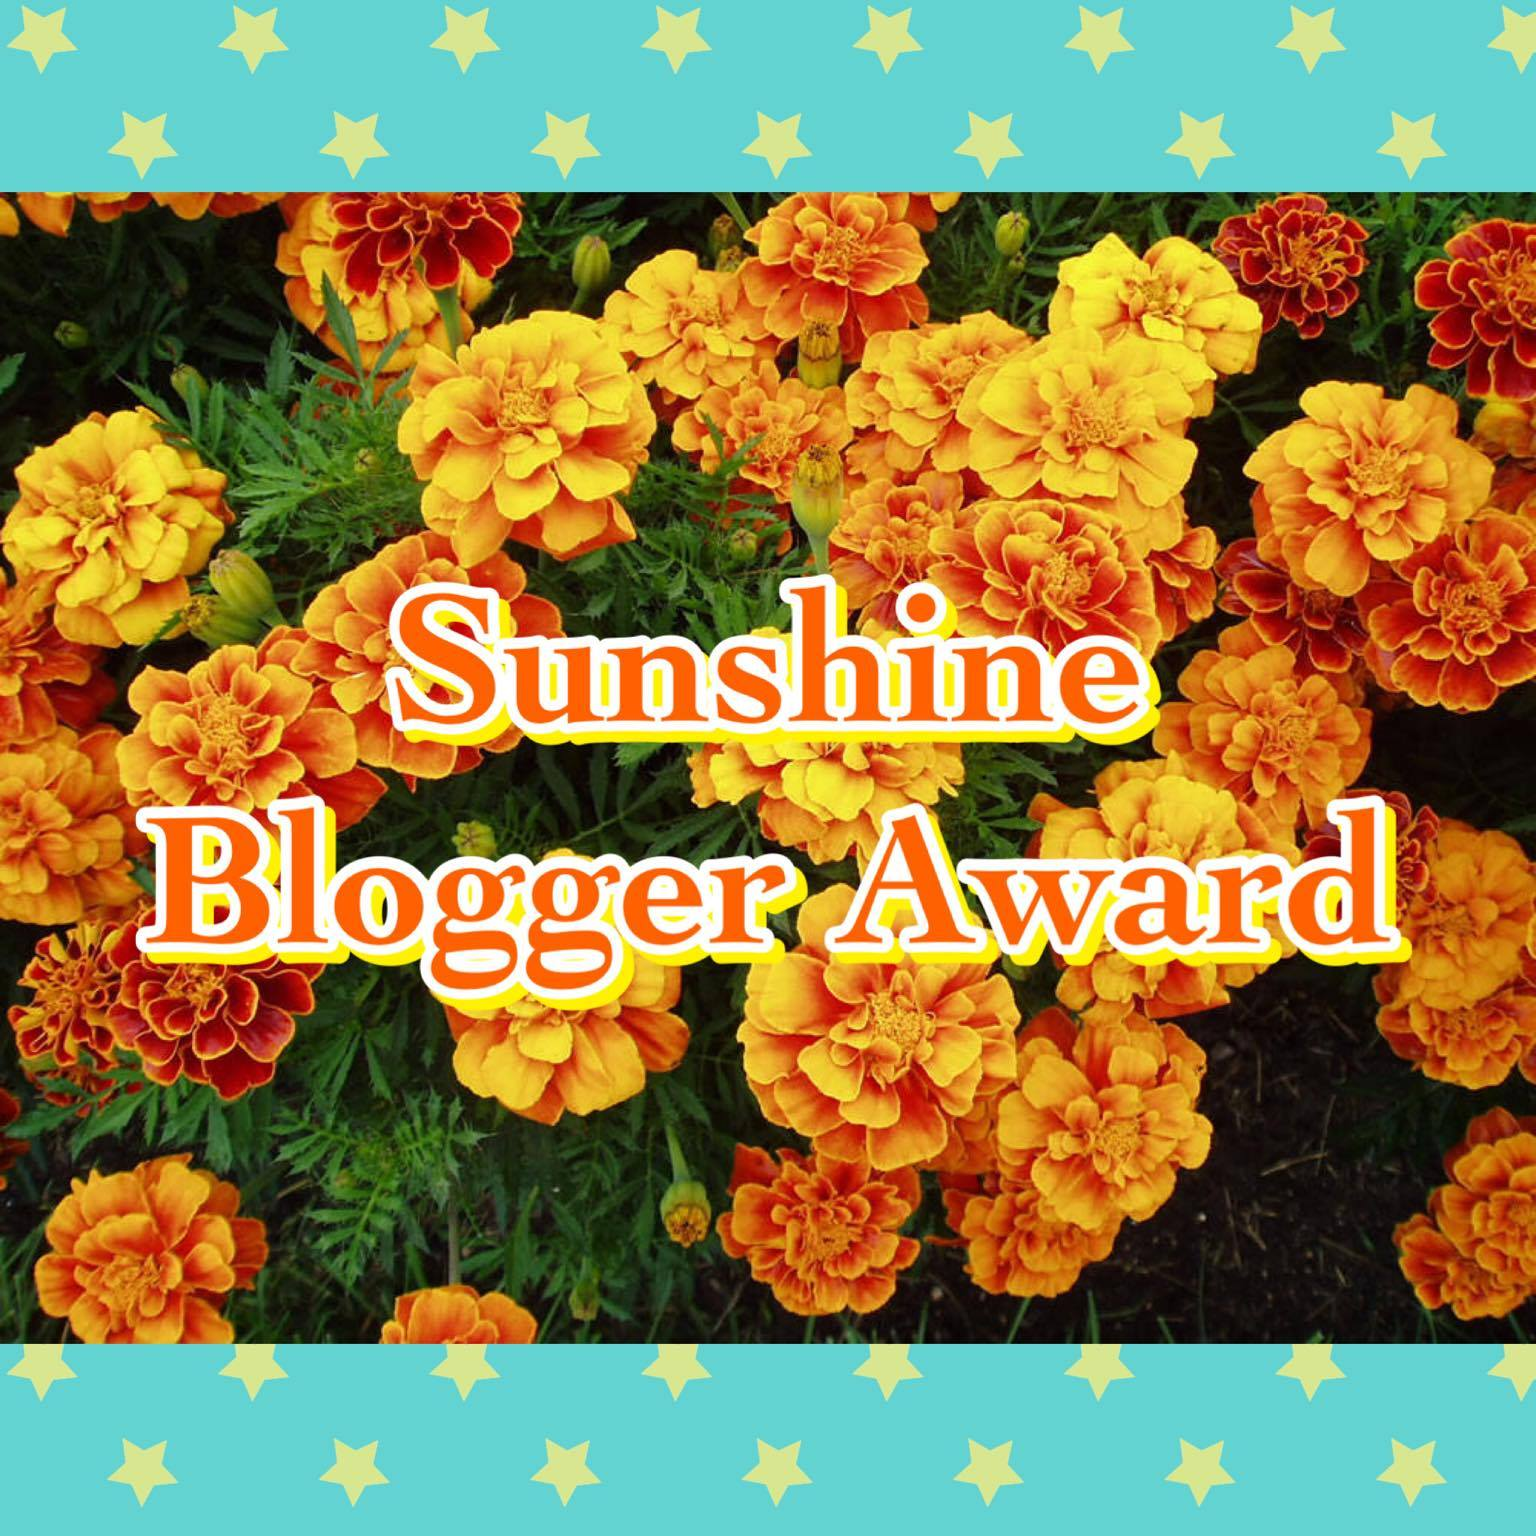 Sunshine Blogger Award (text on a field of marigolds...top and bottom yellow and blue star border)